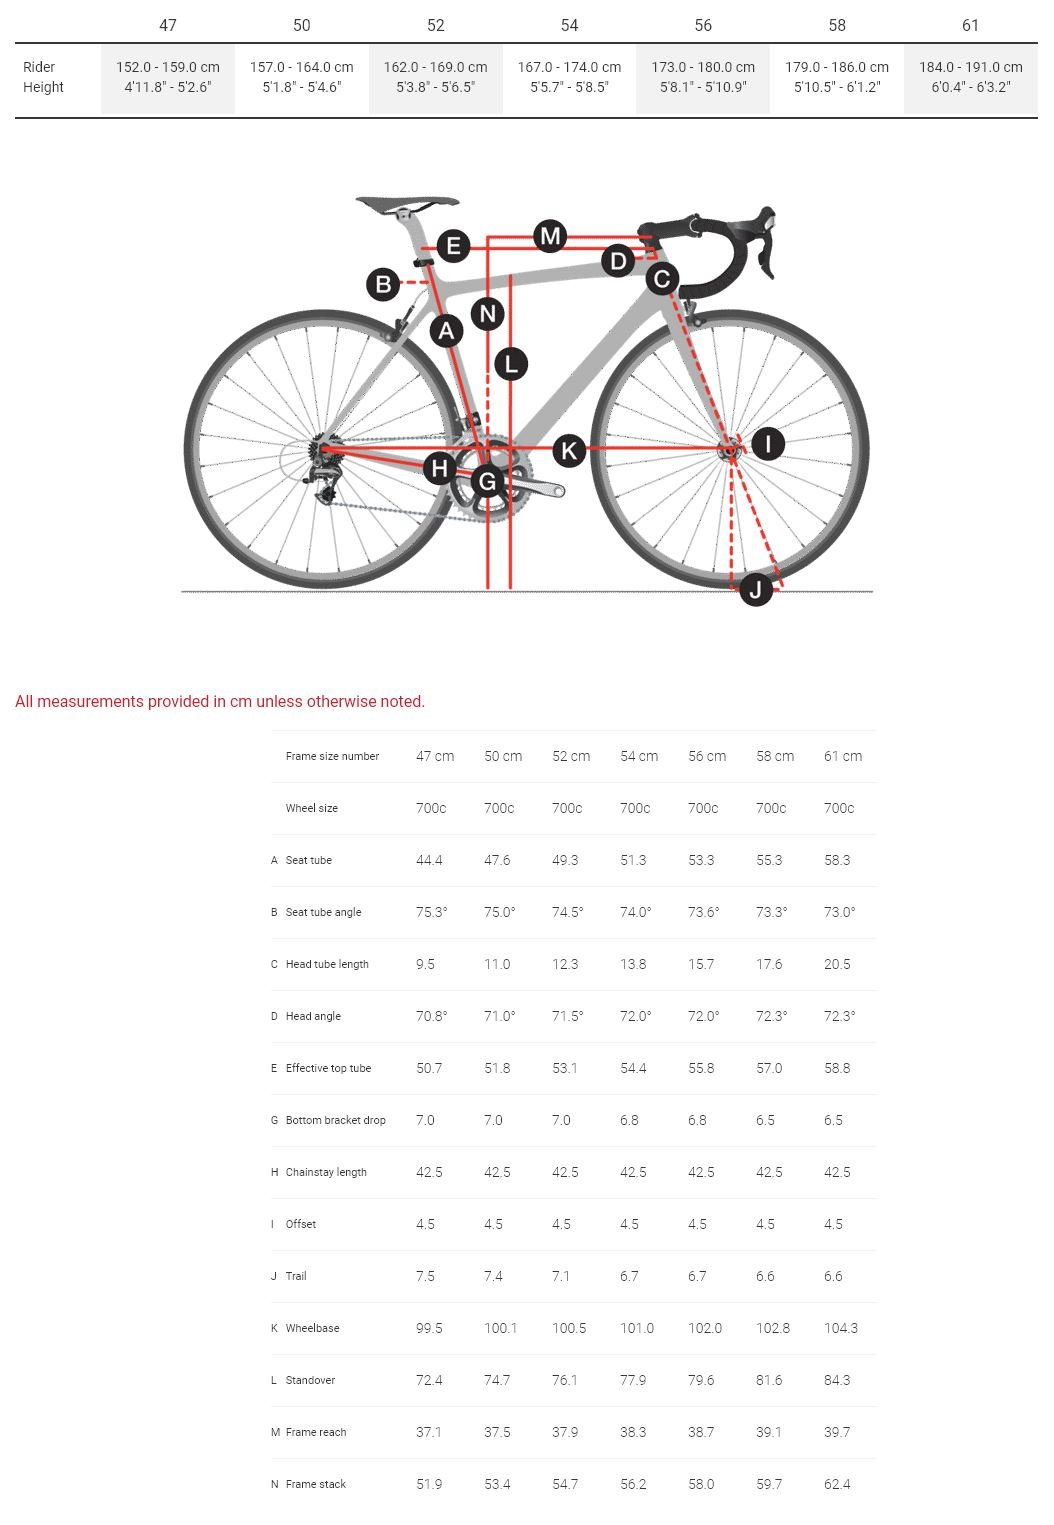 Trek Crocket Disc Geometry